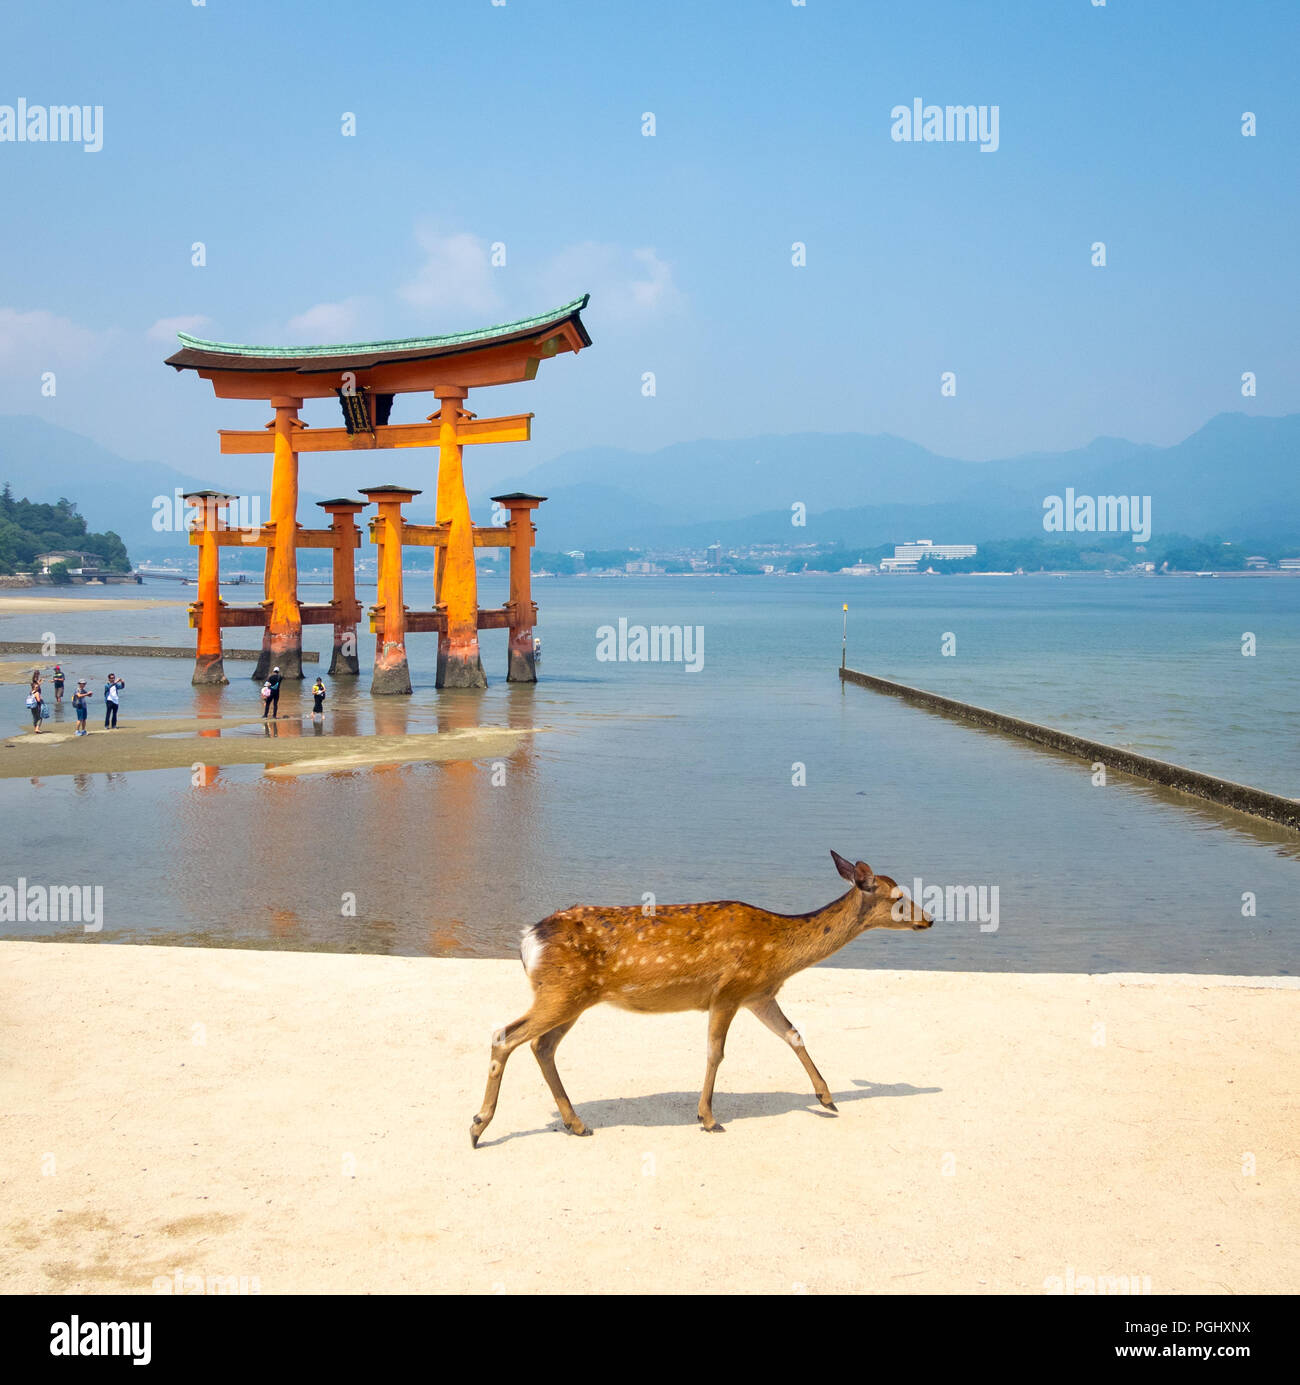 A female sika deer (Cervus nippon) in front of the floating torii gate at Itsukushima Shrine on the island of Miyajima, Hiroshima Prefecture, Japan. - Stock Image